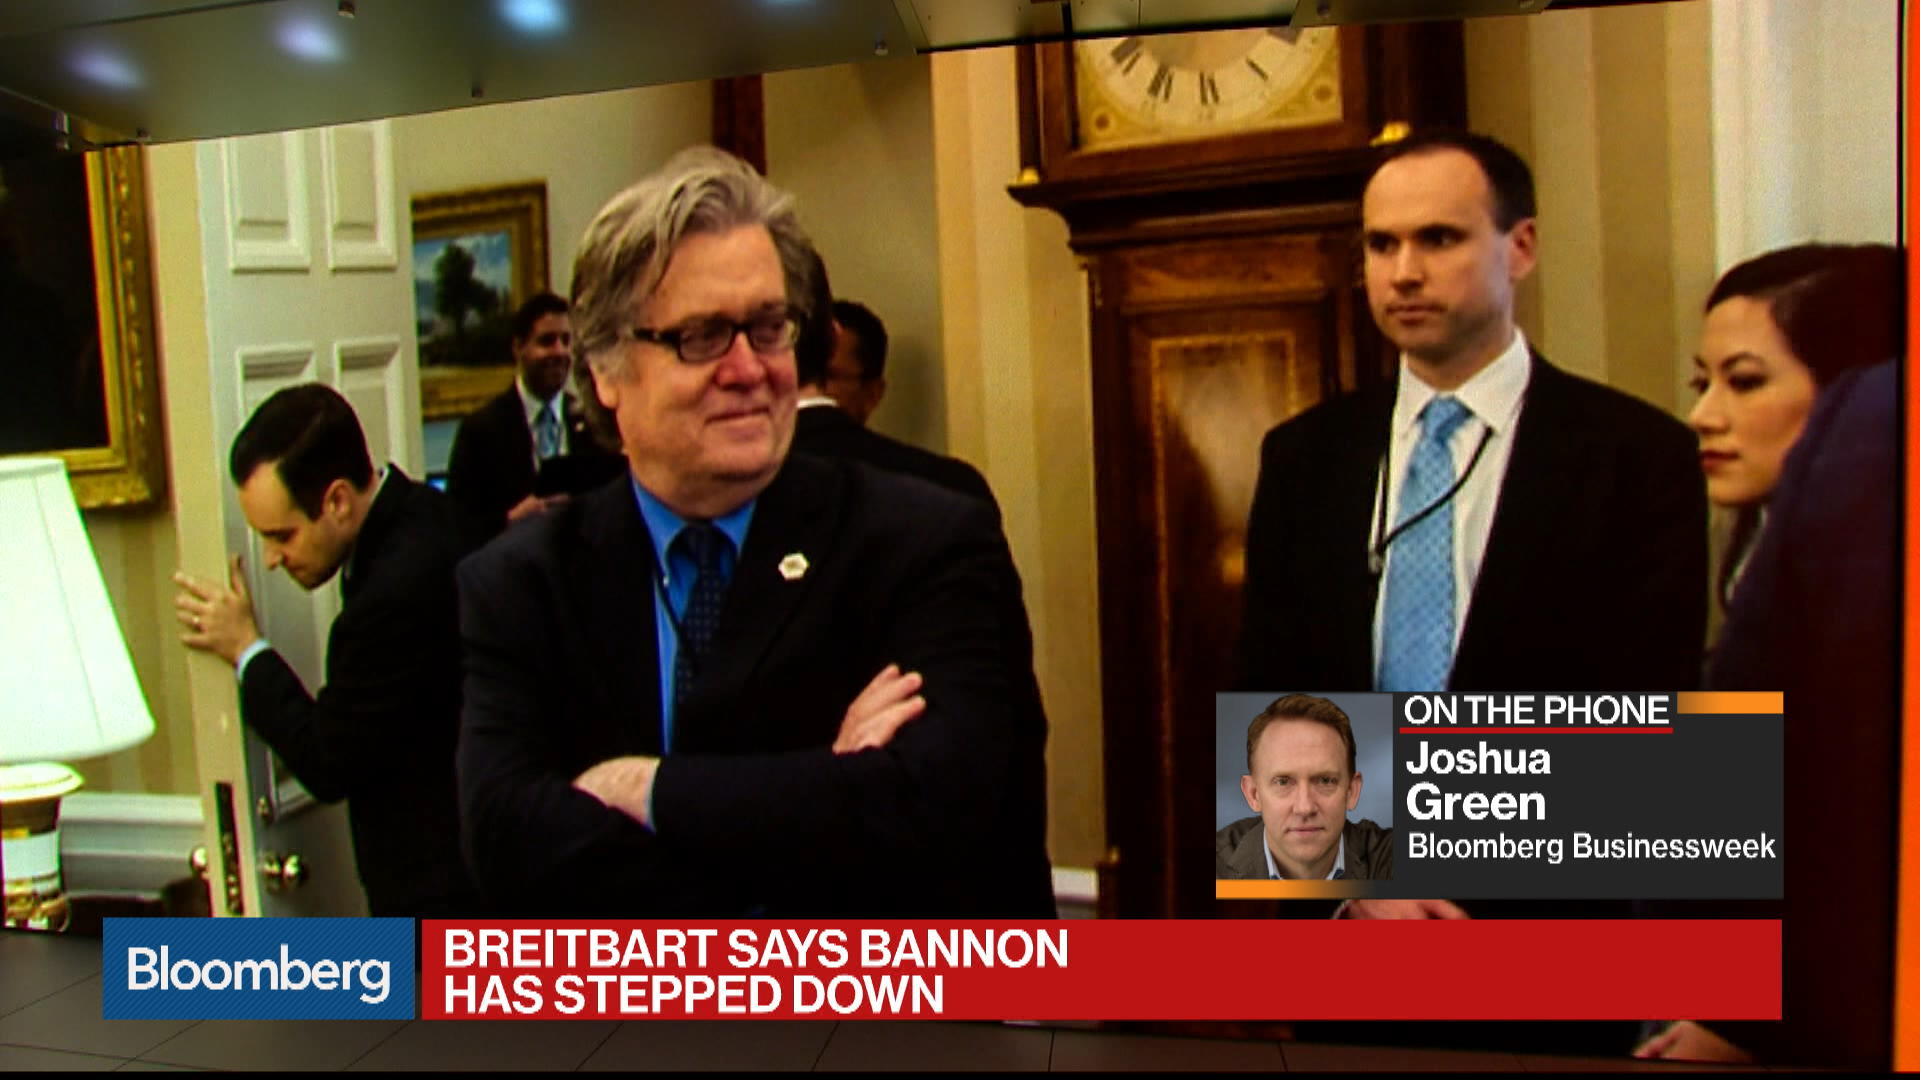 Bannon Leaves Breitbart After Trump Feud - Bloomberg